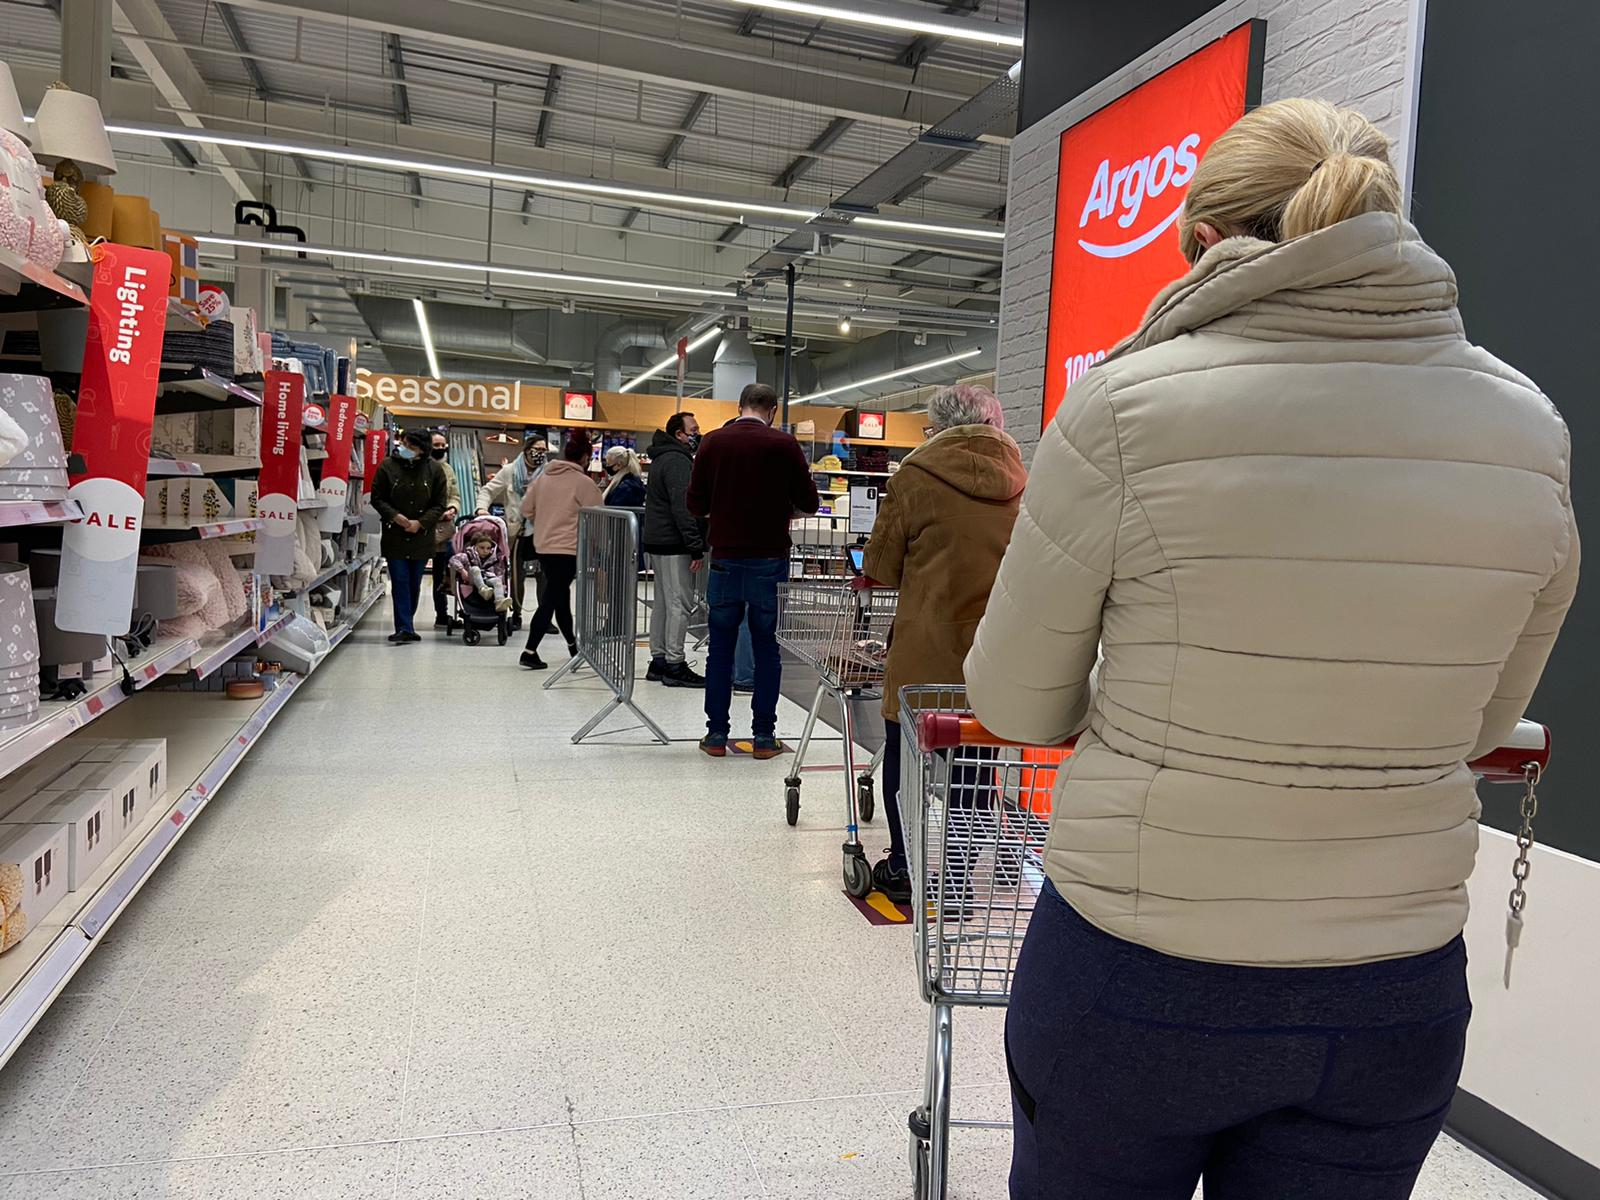 \'SELFISH SAINSBURY\'S\': Customers queue for the click-and-collect service at Argos in Sainsbury\'s Andersonstown while locally-owned stores selling household items are forbidden to do business - including click-and-collect